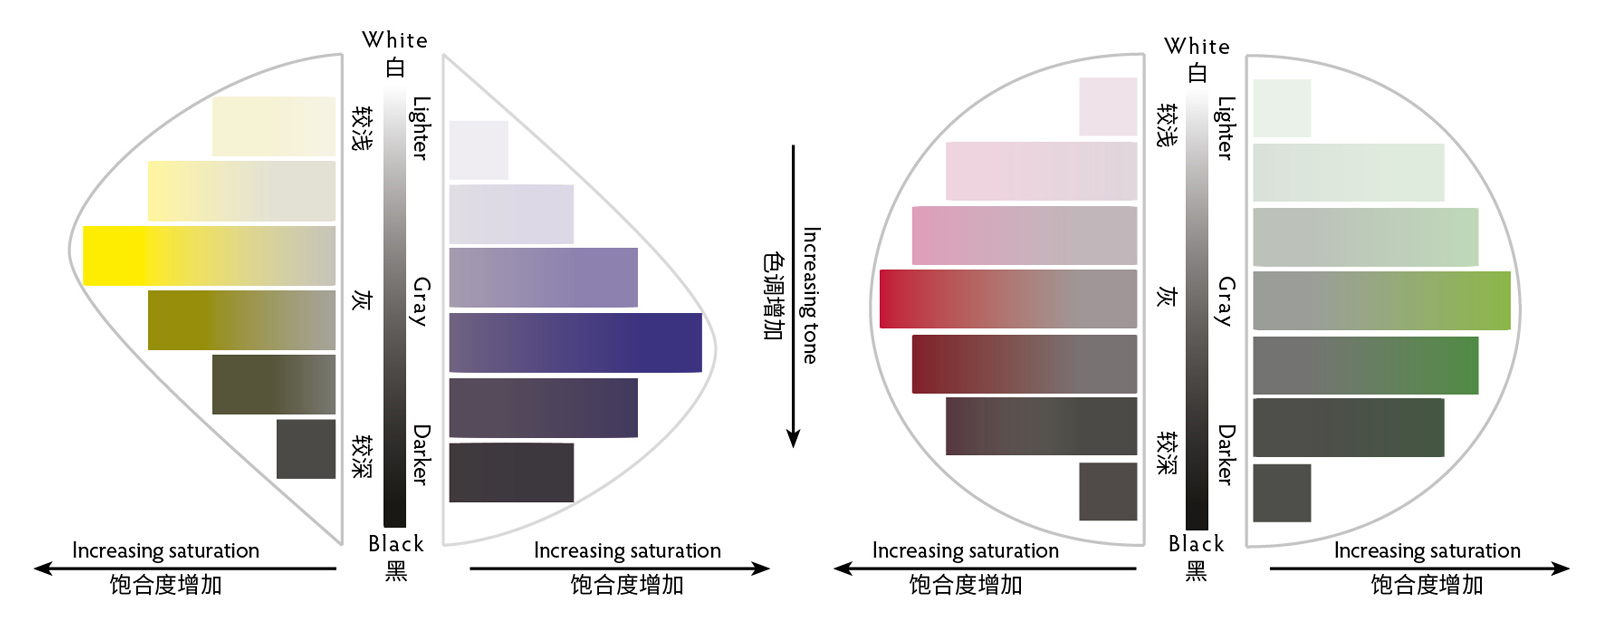 Vertical slices through the color sphere demonstrate the relationship between tone and saturation. Yellow at its highest saturation is lighter in tone than violet, while the highest saturations of red and green are equal in tone.